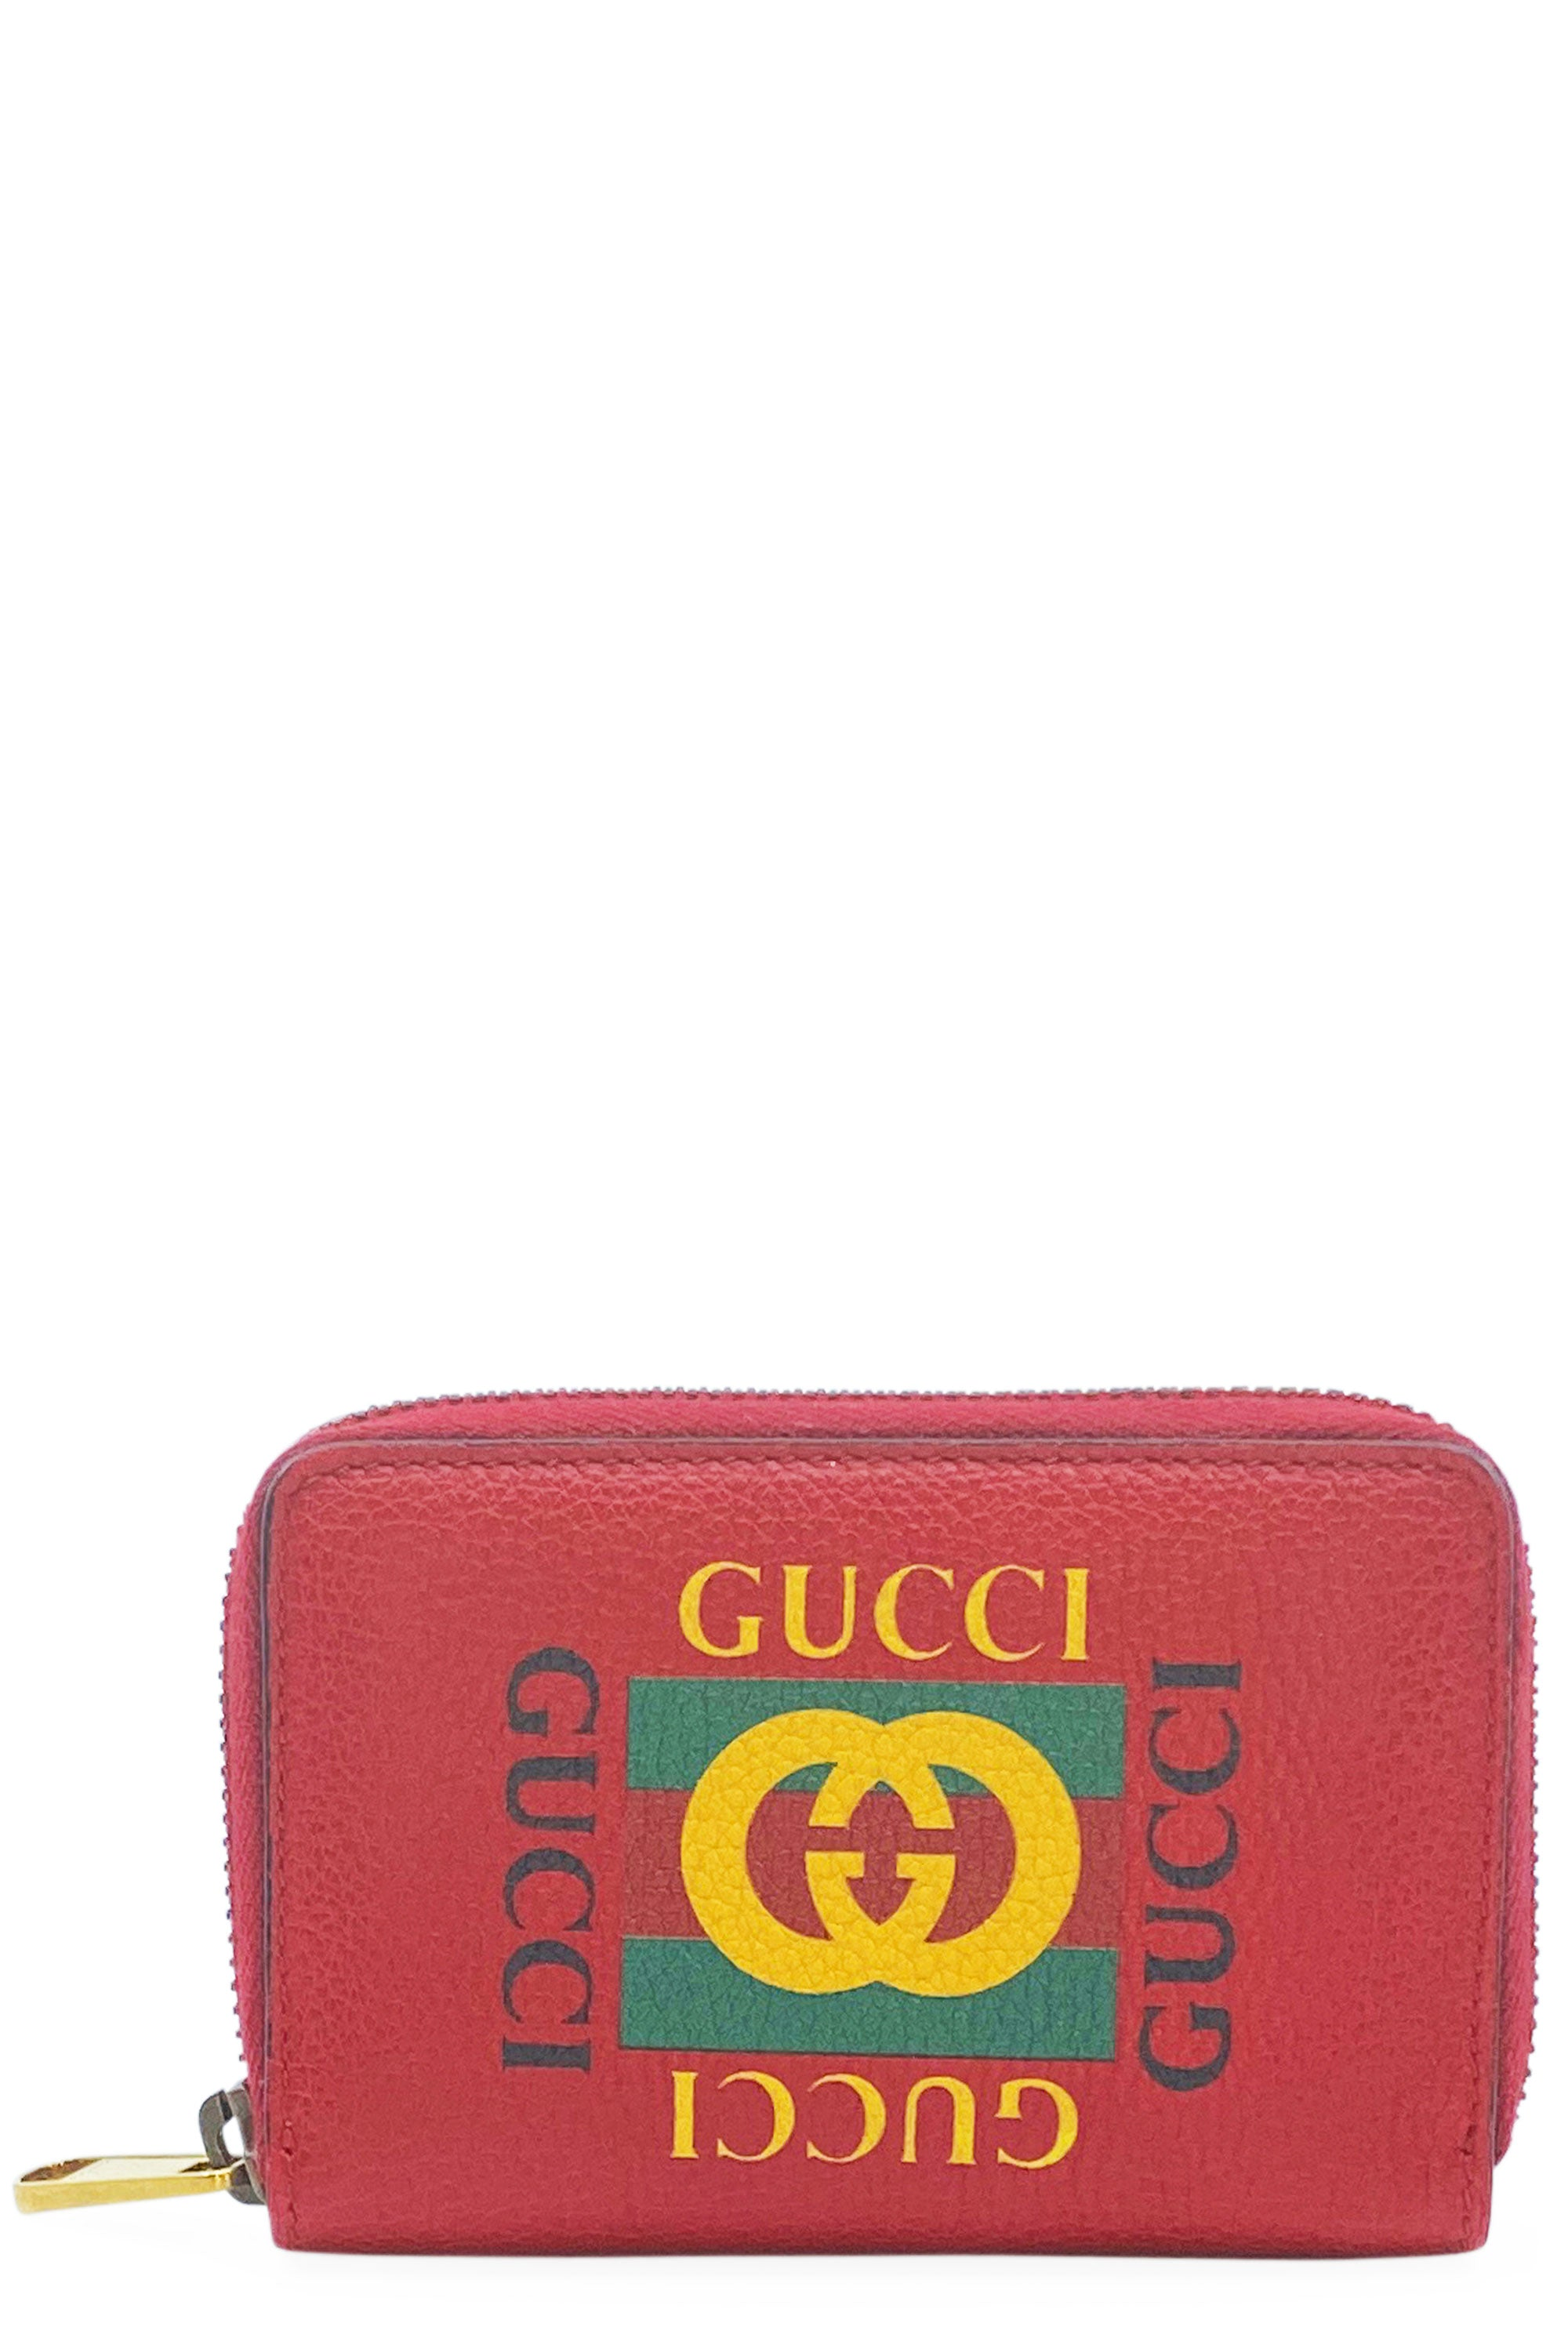 GUCCI Printed Leather Wallet Red Frontansicht